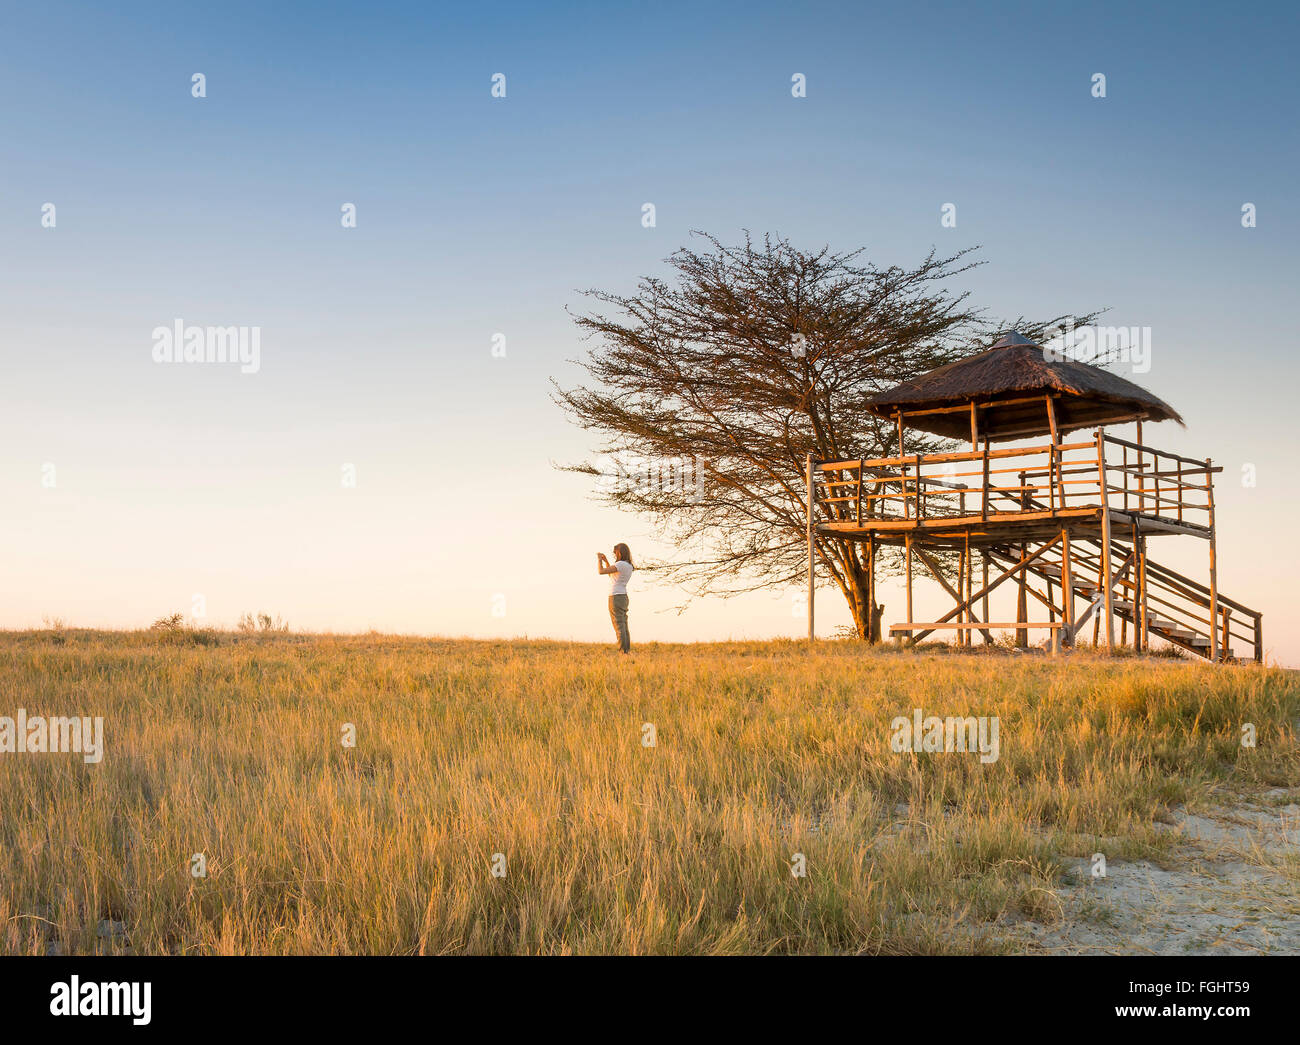 A young woman stands in long grass and takes photos of sunset while on safari in the Makgadikgadi Pans, Botswana, - Stock Image